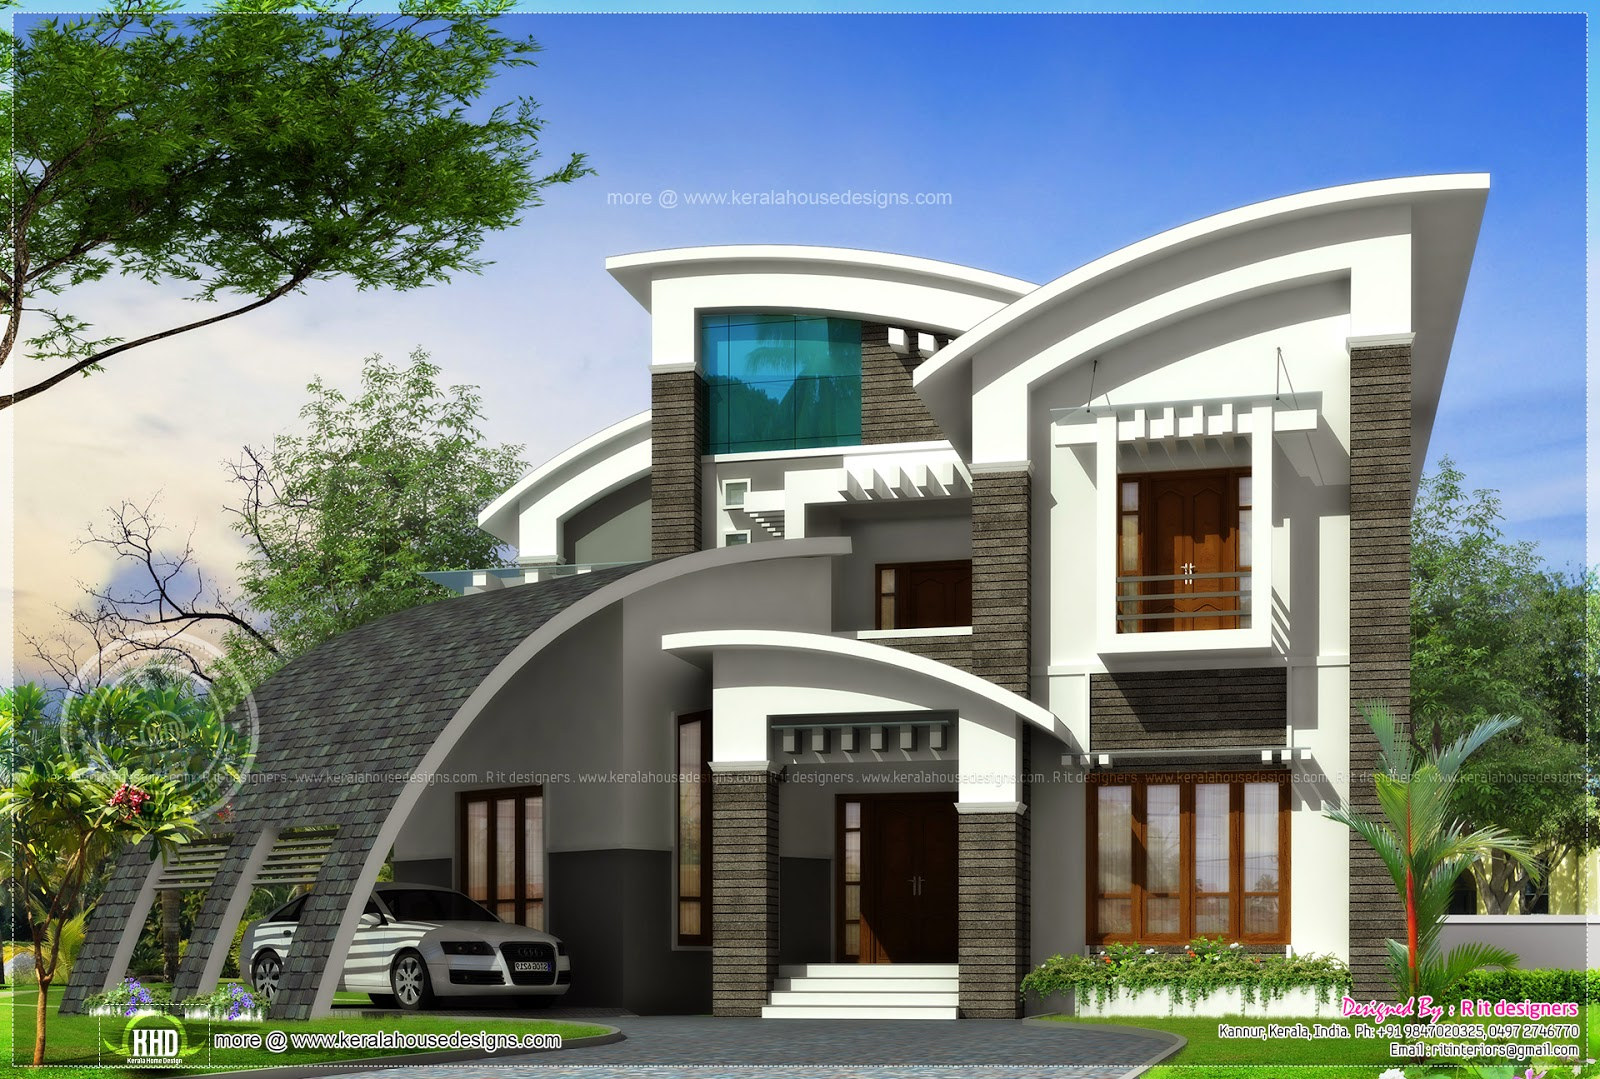 Super luxury ultra modern house design kerala home for Modern style house plans